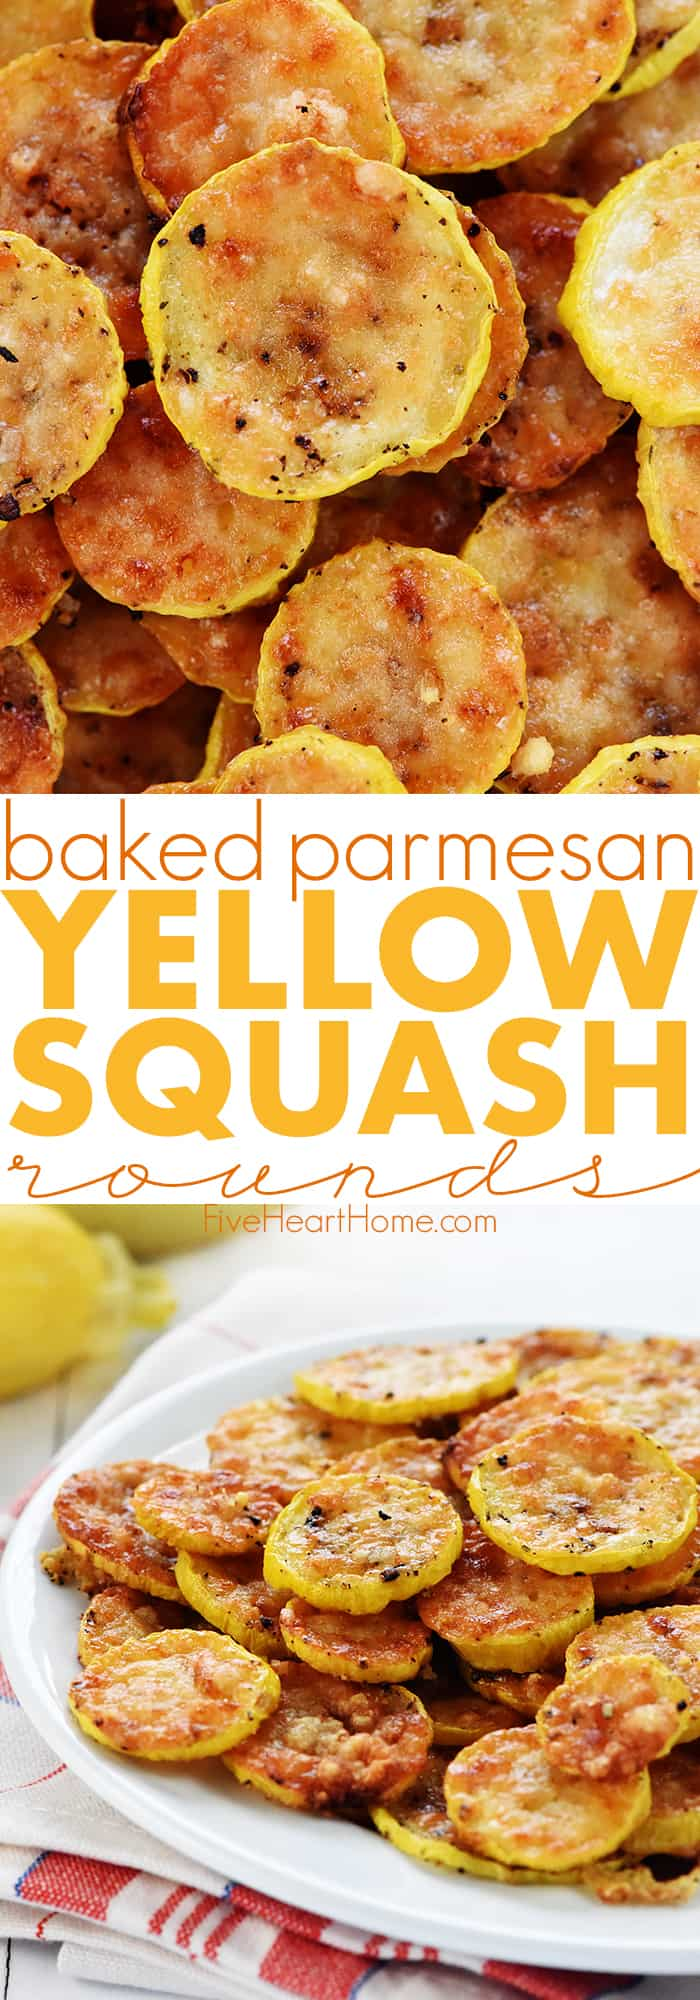 Baked Parmesan Yellow Squash Rounds Recipe ~ an easy and delicious summer side dish recipe requiring just two ingredients: yellow squash and grated Parmesan! | FiveHeartHome.com